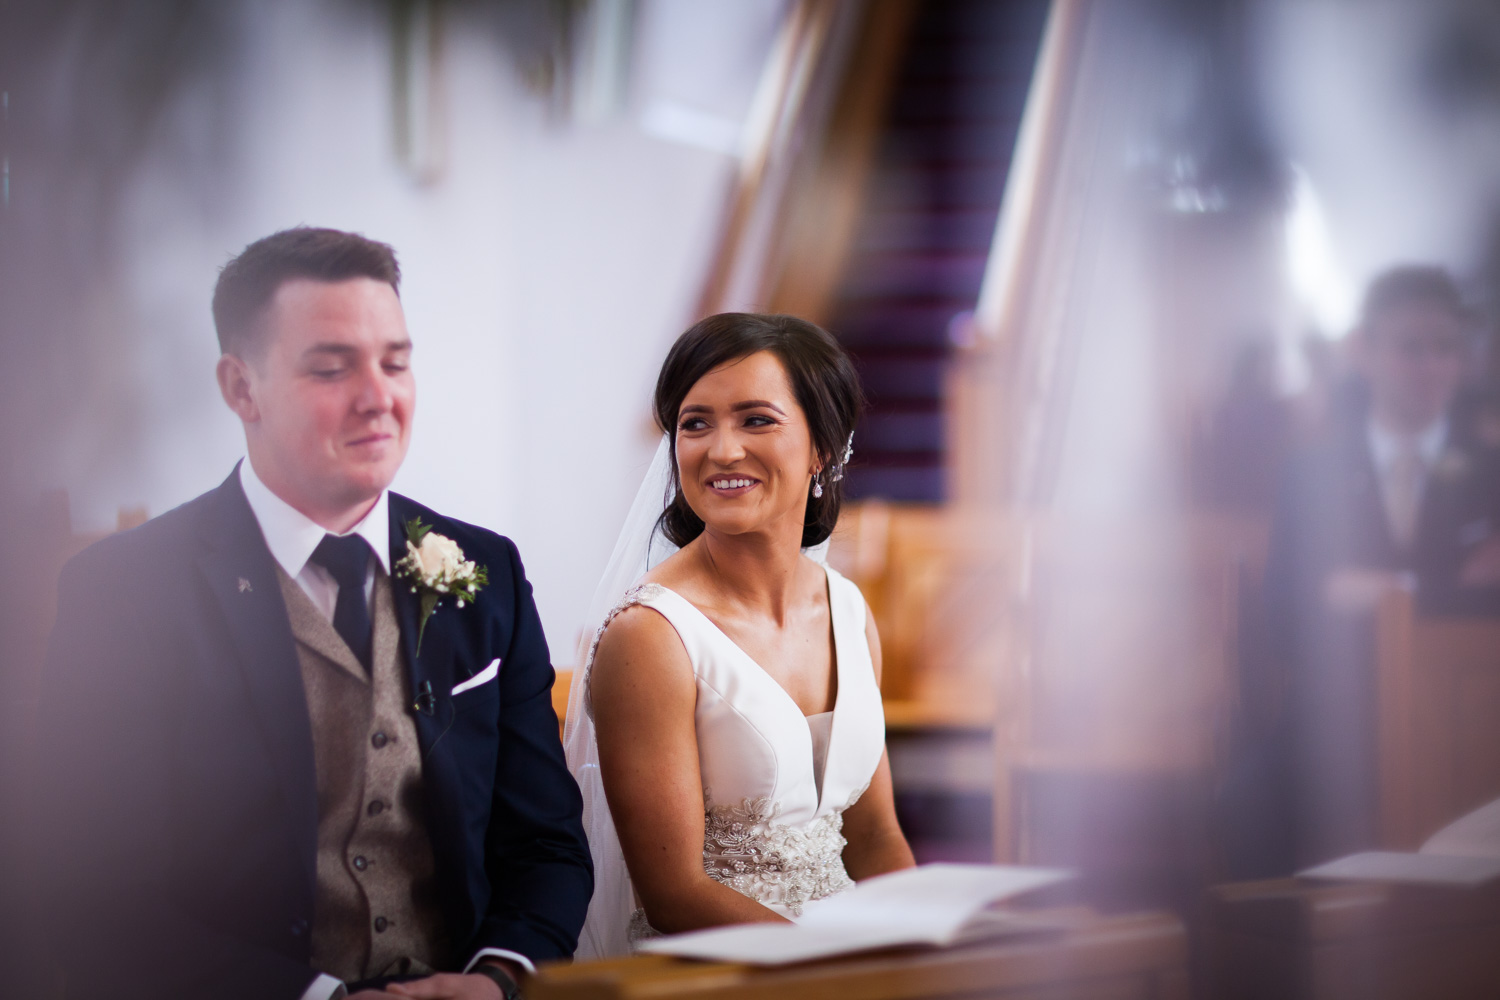 Mark_Barnes_Northern_Ireland_wedding_photographer_redcastle_hotel_Donegal_Wedding_photography_Donegal_wedding_photographer-18.jpg